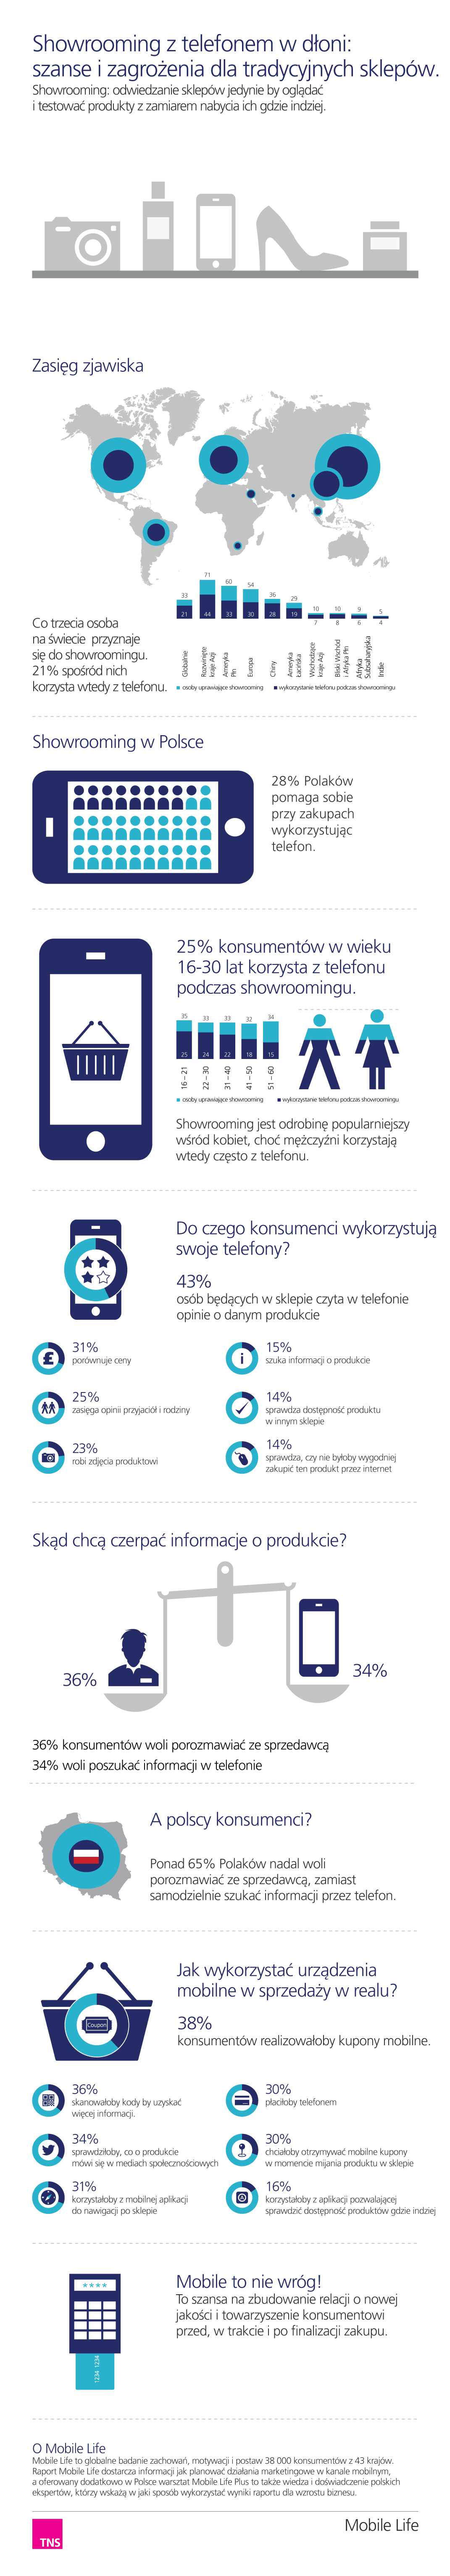 MobileLife_Infographic